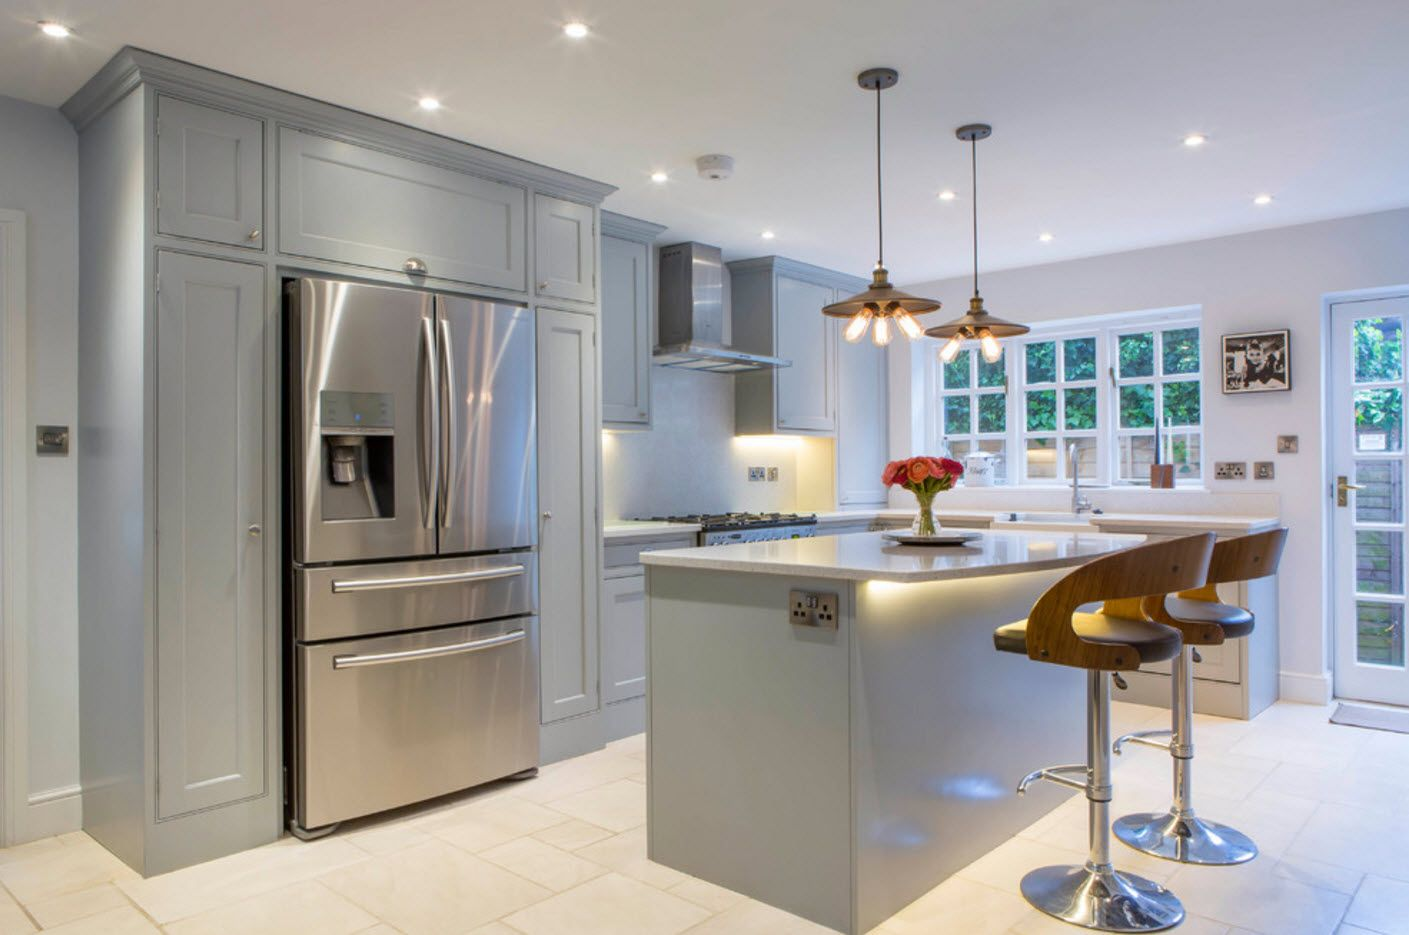 Steel appliances for hi-tech kitchen are indispensable